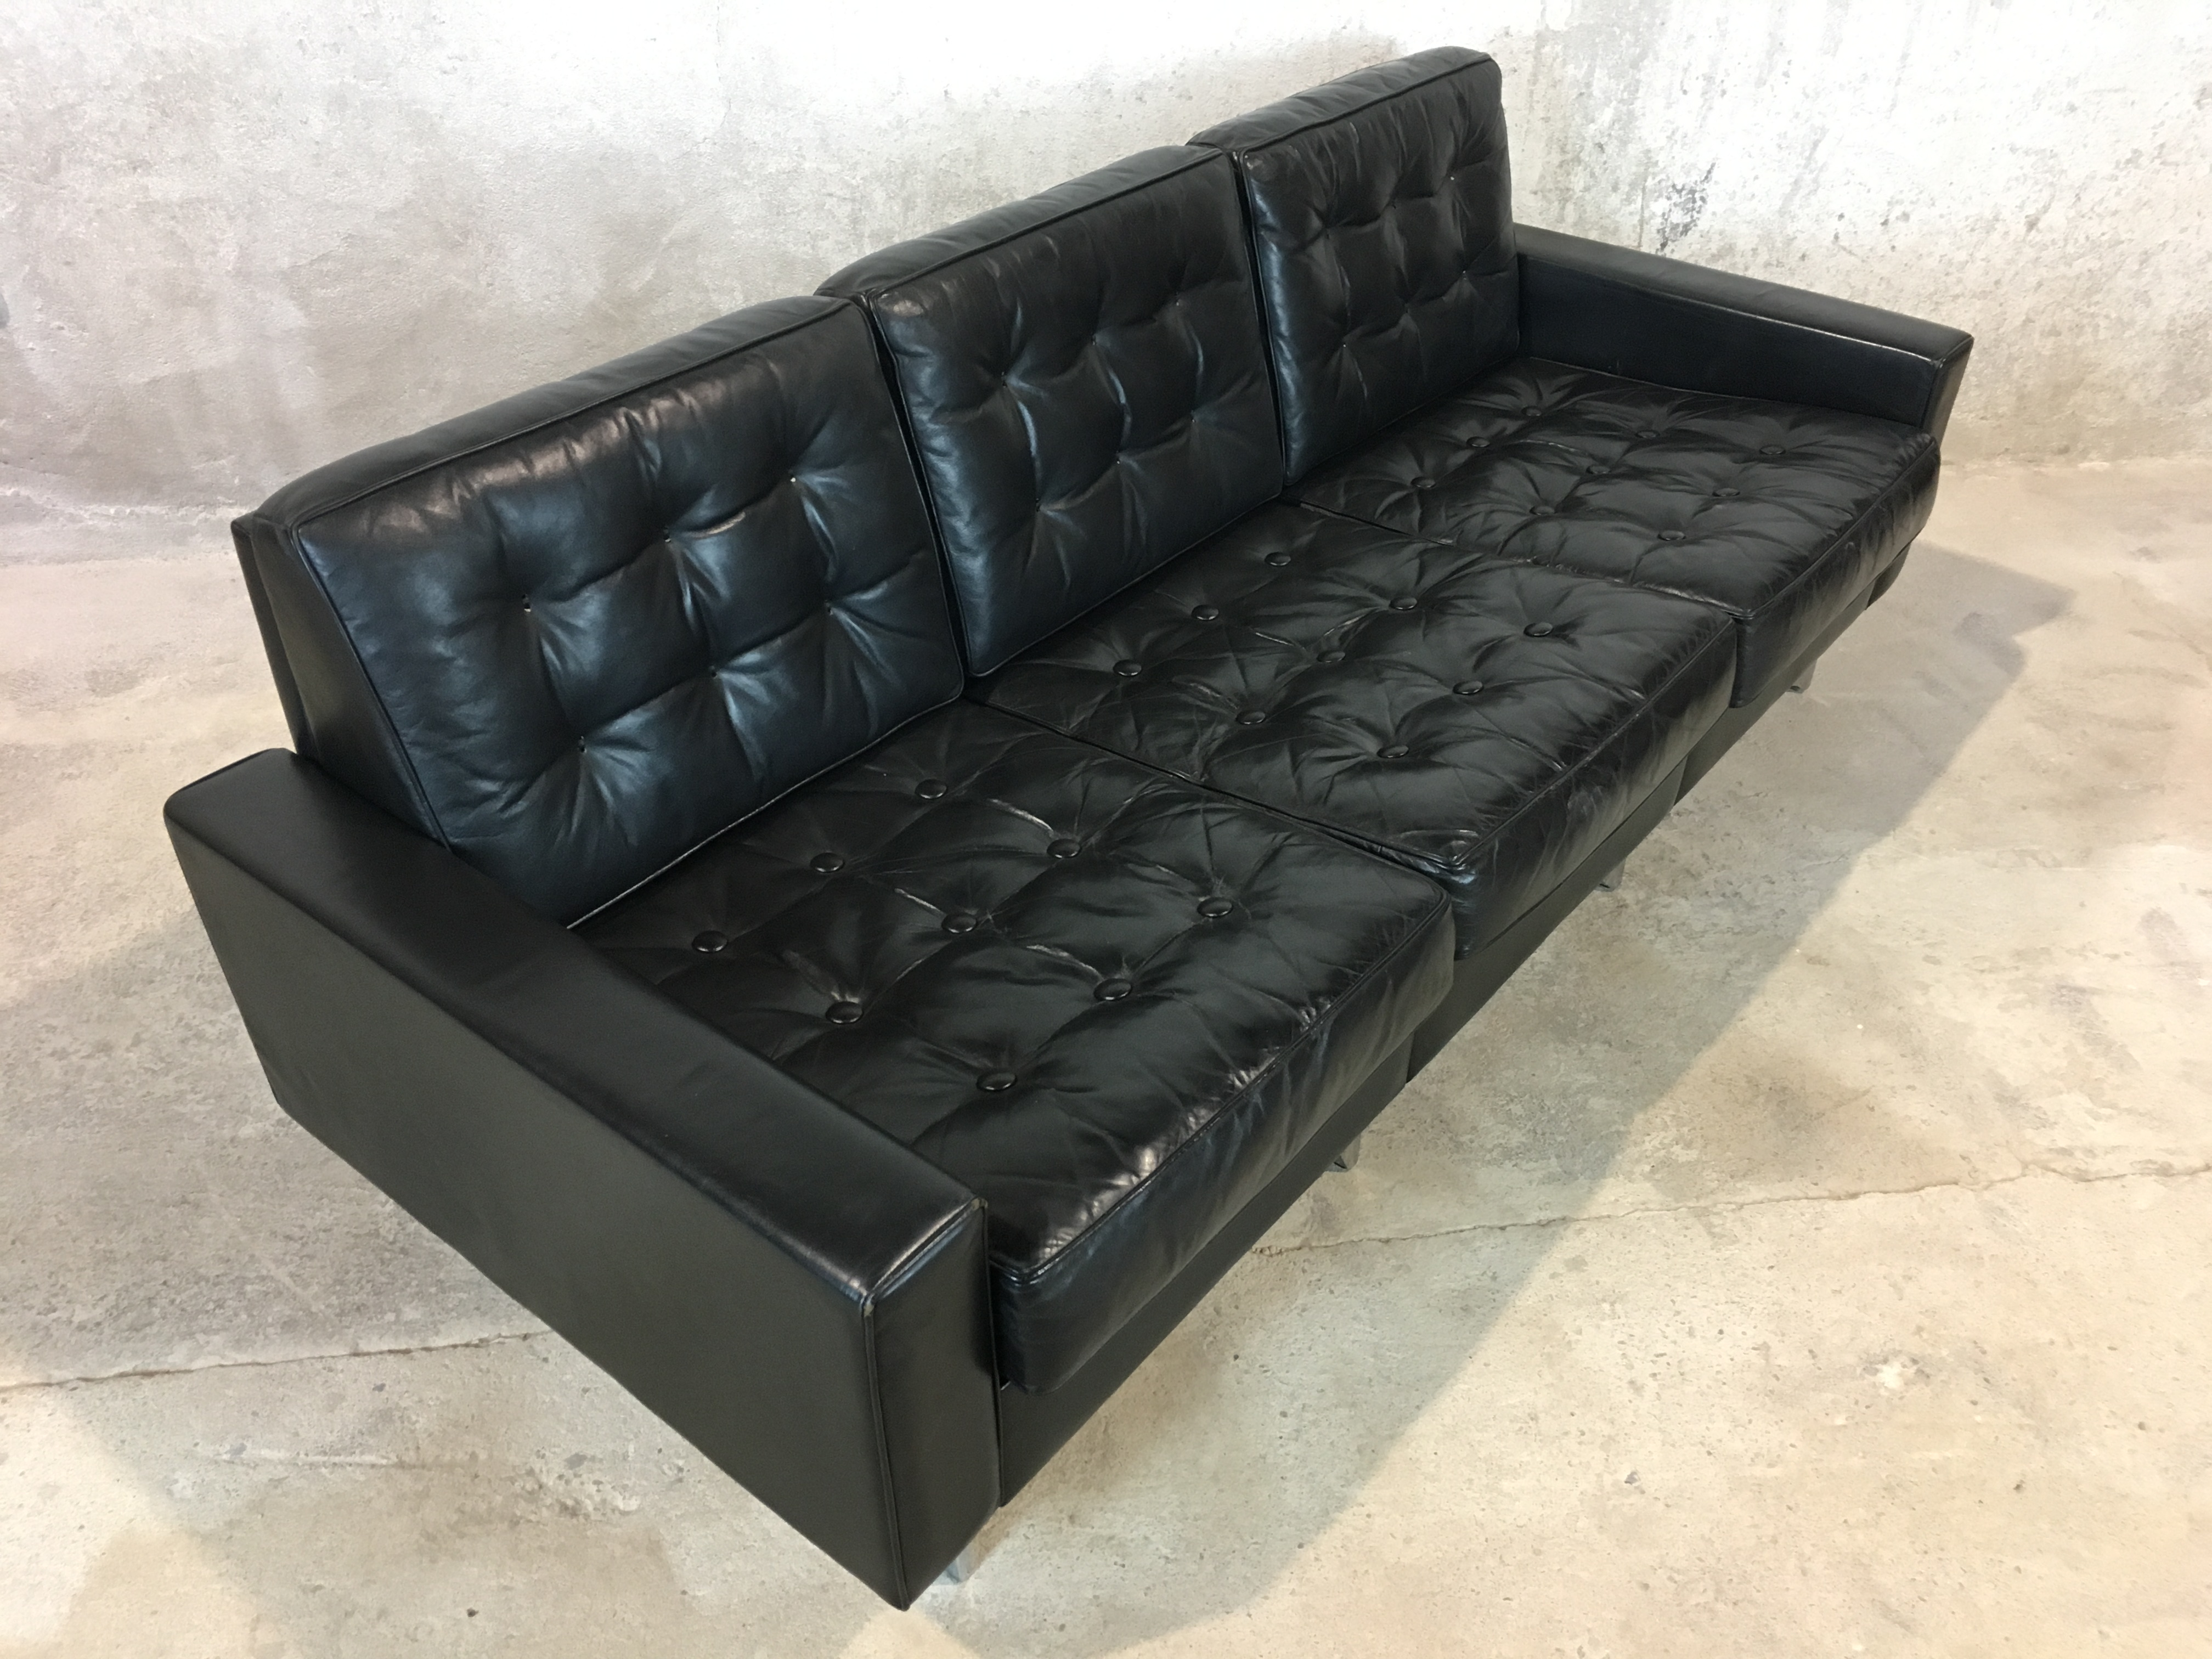 canap cuir ann e 70 de sede ds 3a sofa leather black 1970. Black Bedroom Furniture Sets. Home Design Ideas